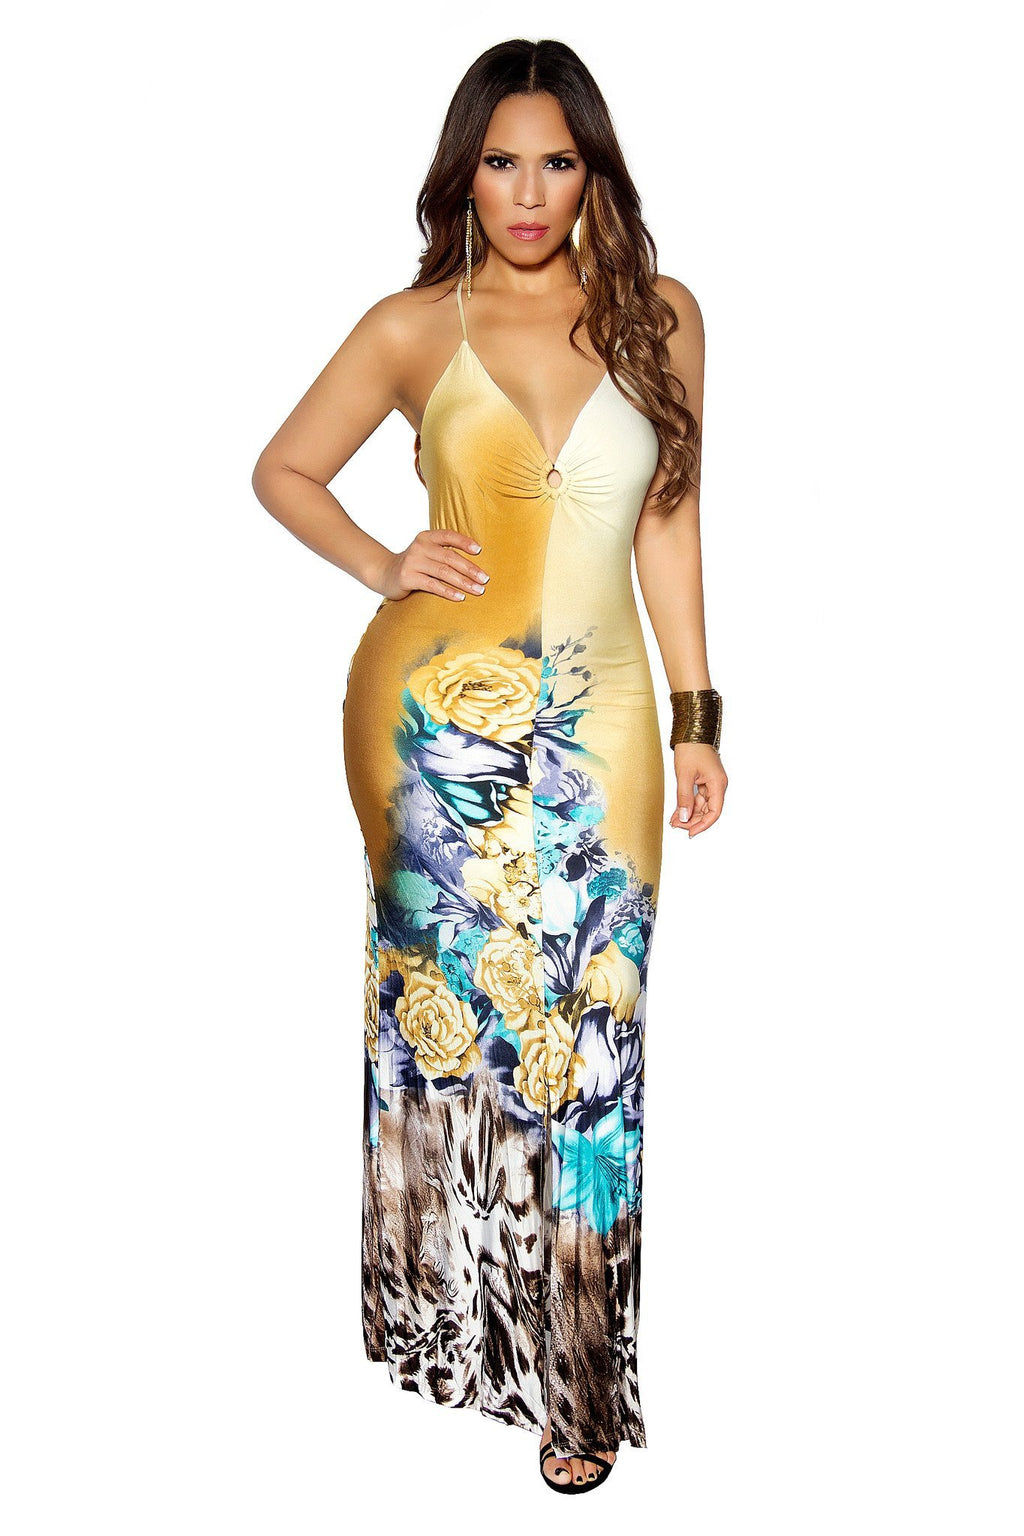 FLORAL PRINT MERMAID MAXI DRESS - MY SEXY STYLES